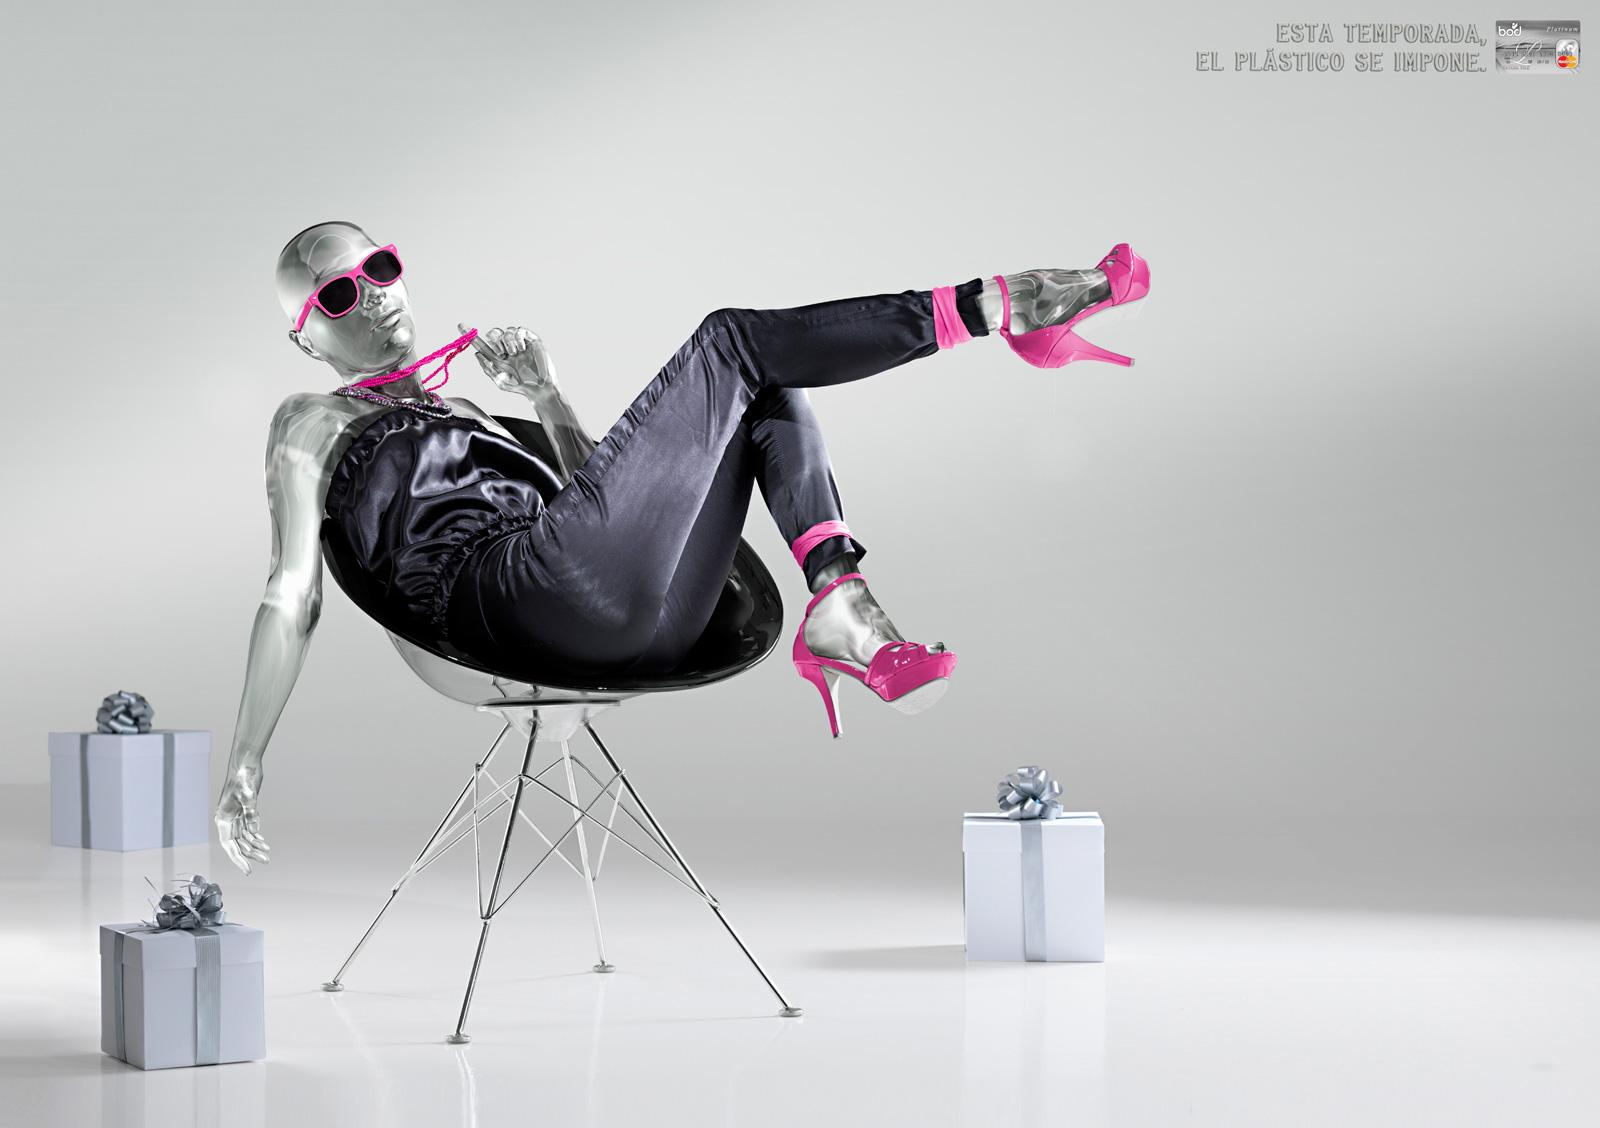 Banco Occidental De Descuento Print Ad -  Plastic, Chair